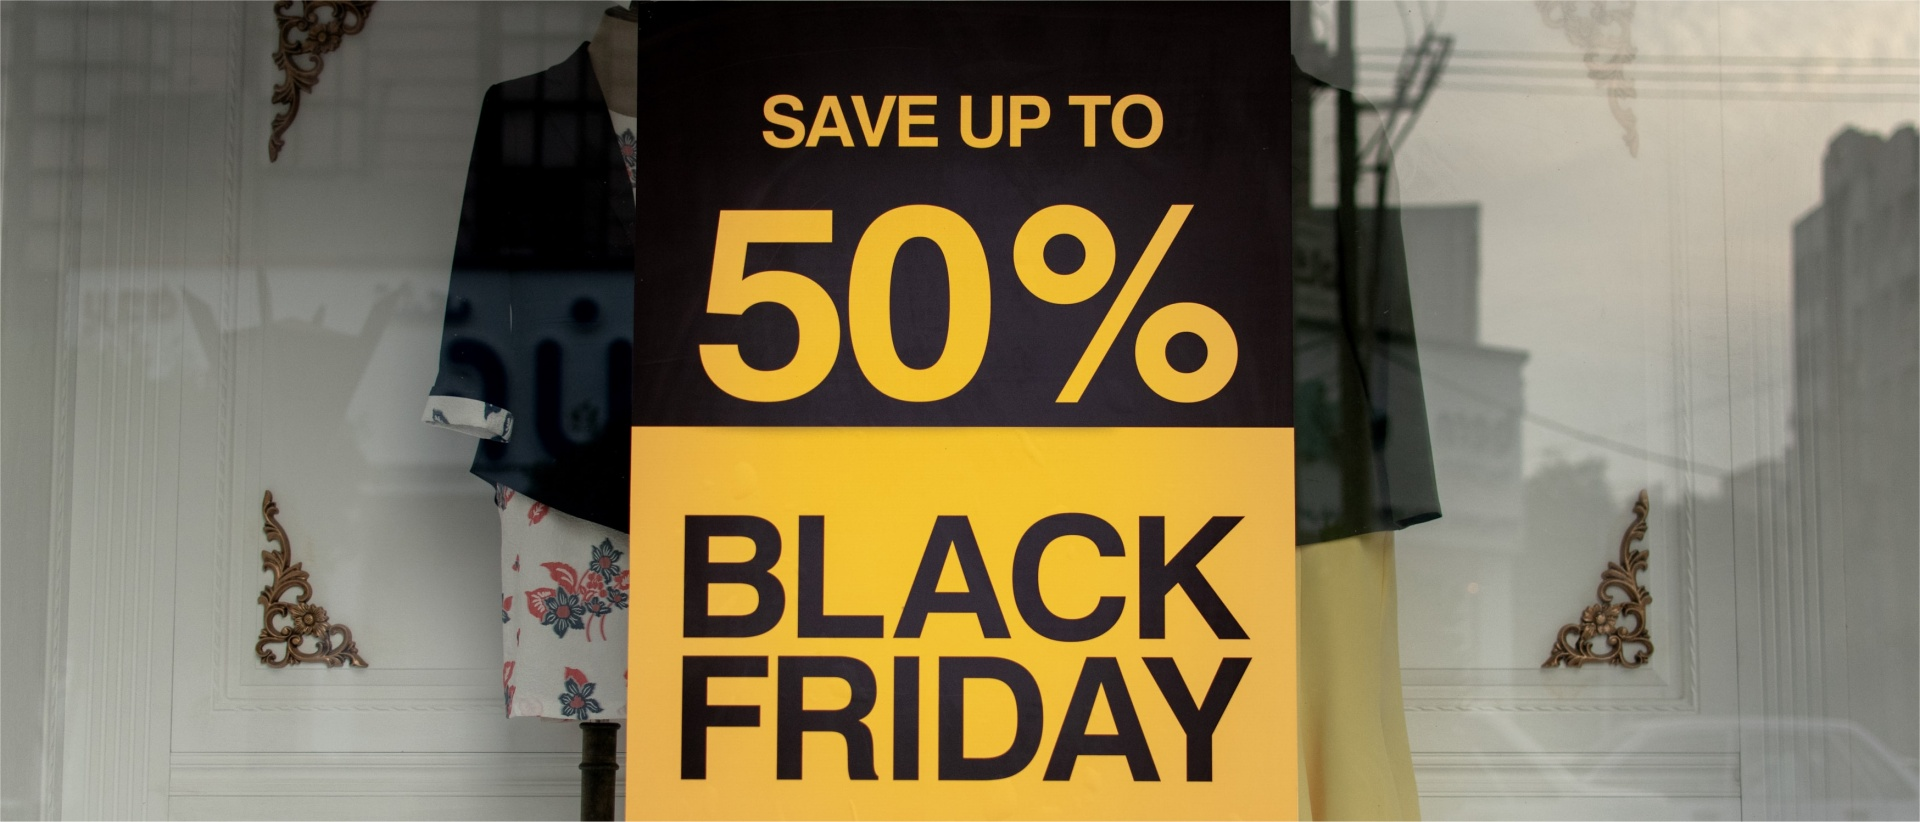 Shopping-am-Black-Friday-st-sst-auch-auf-Kritik